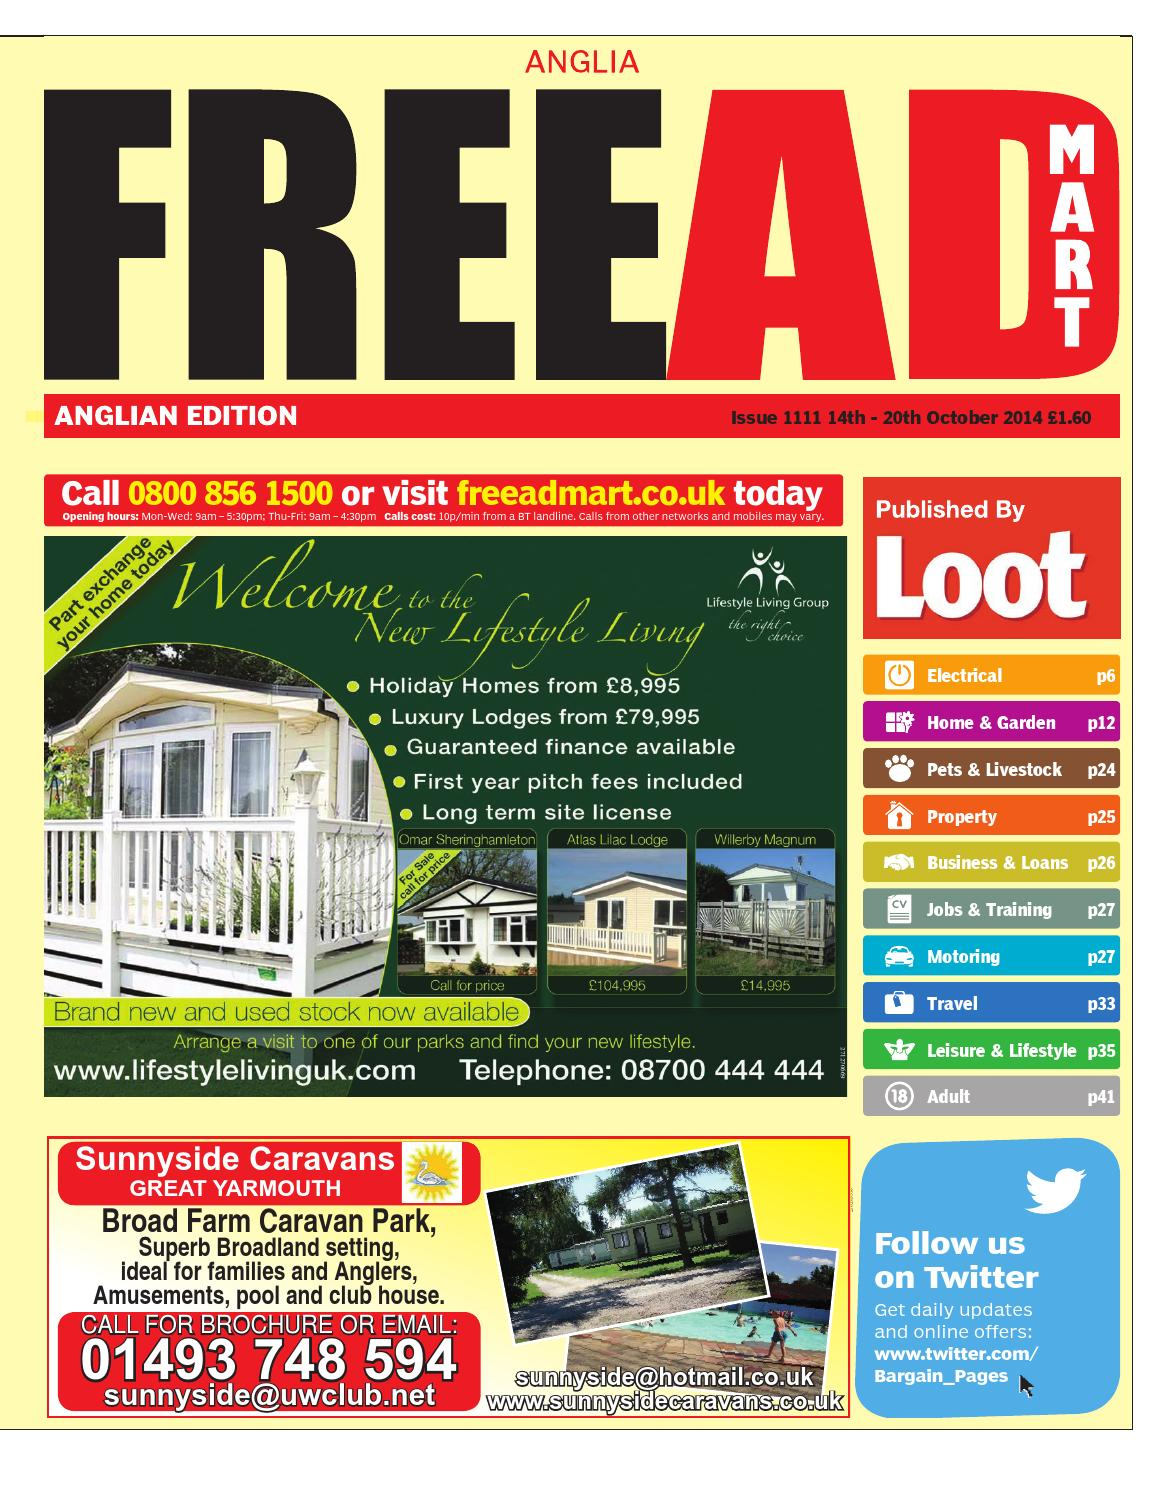 Free Ad Mart Anglian, 14th October 2014 by Loot issuu